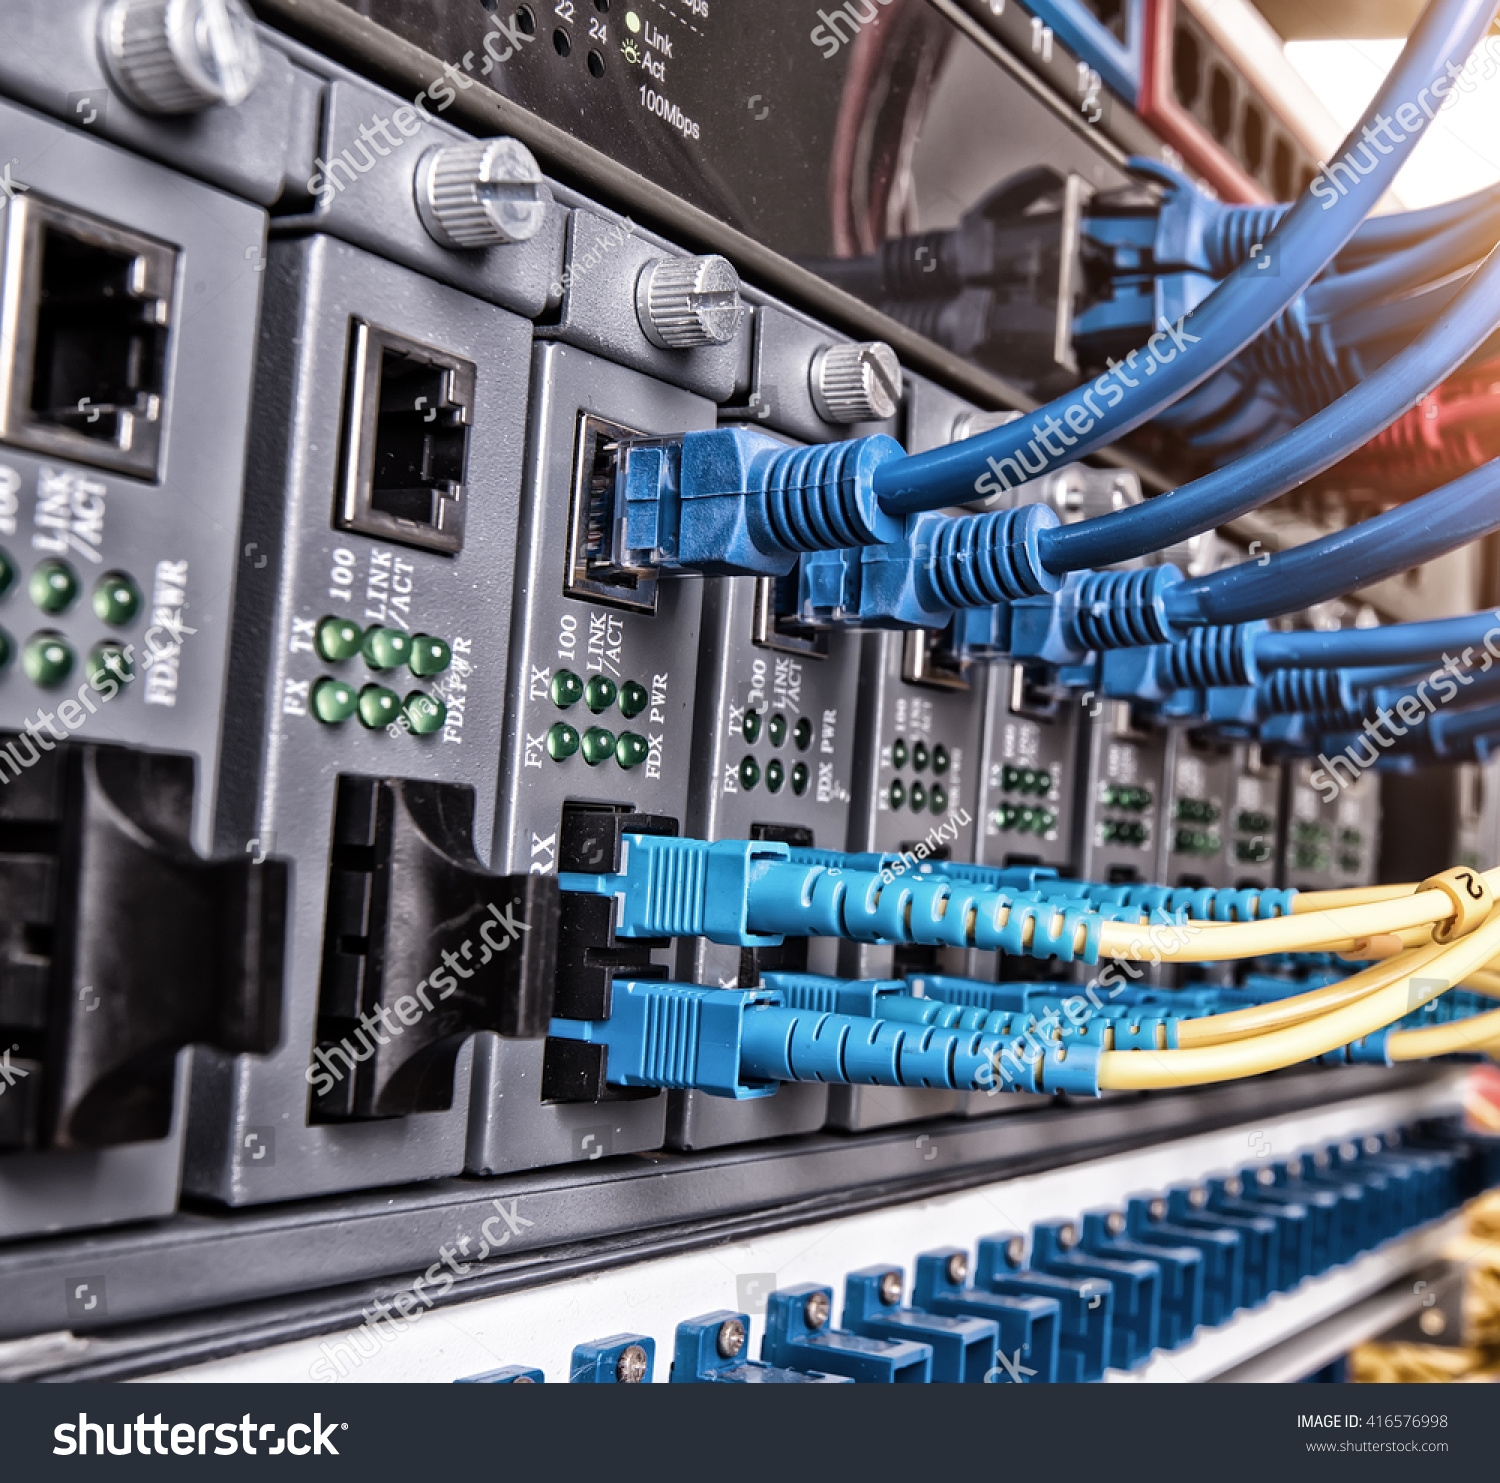 stock photo fiber optic switchboard with wires 416576998 fiber optic switchboard wires stock photo 416576998 shutterstock